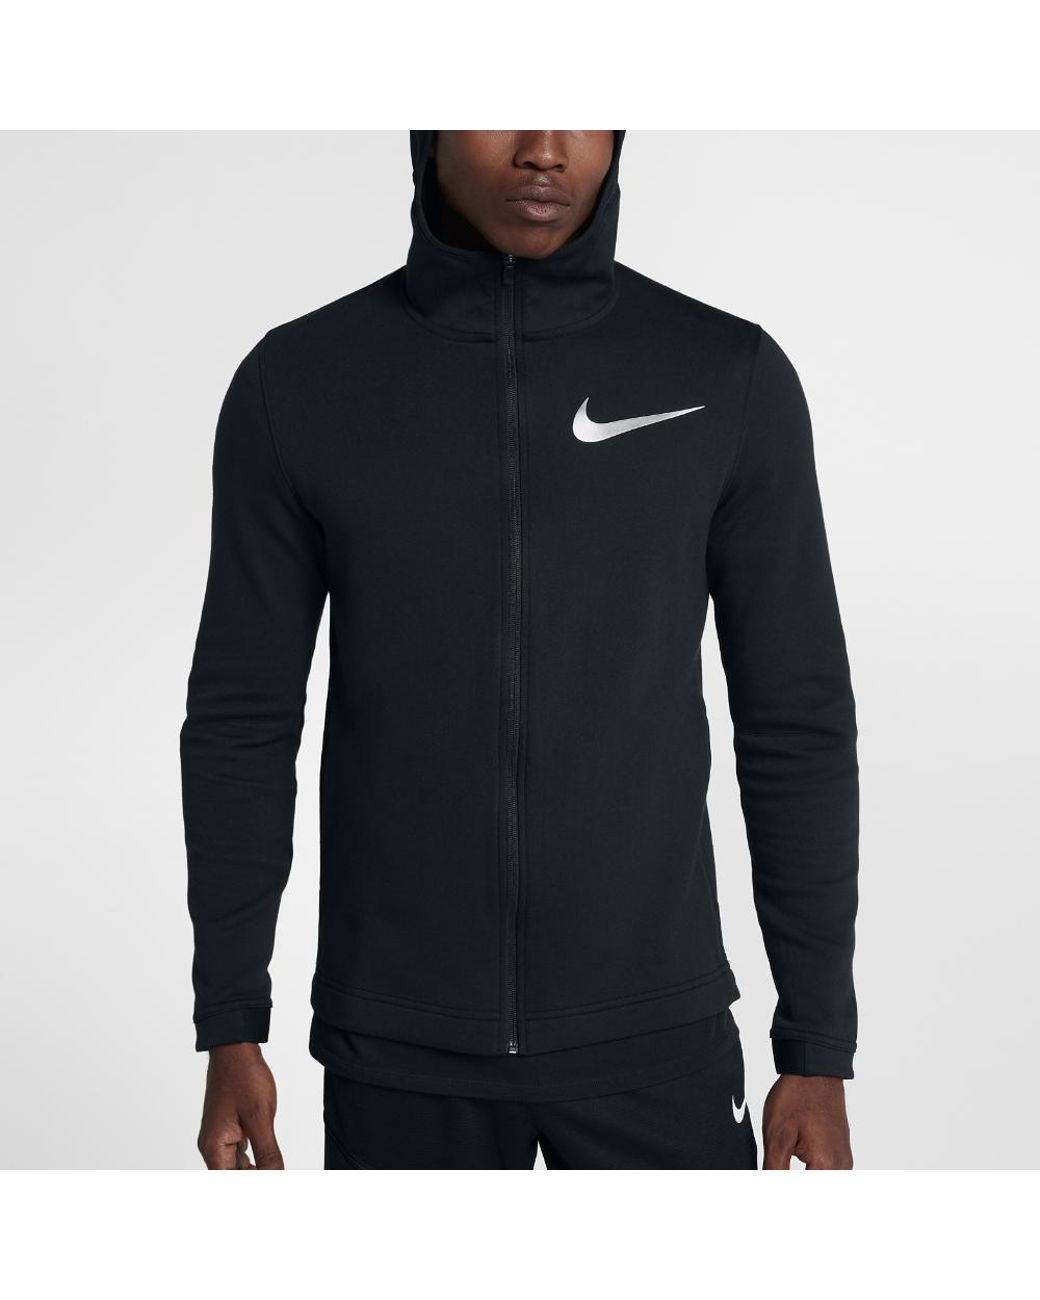 0a448efdefb4 Long-Touch to Zoom. Nike - Black Dry Hyper Elite Showtime Men s Full Zip  Basketball Hoodie ...